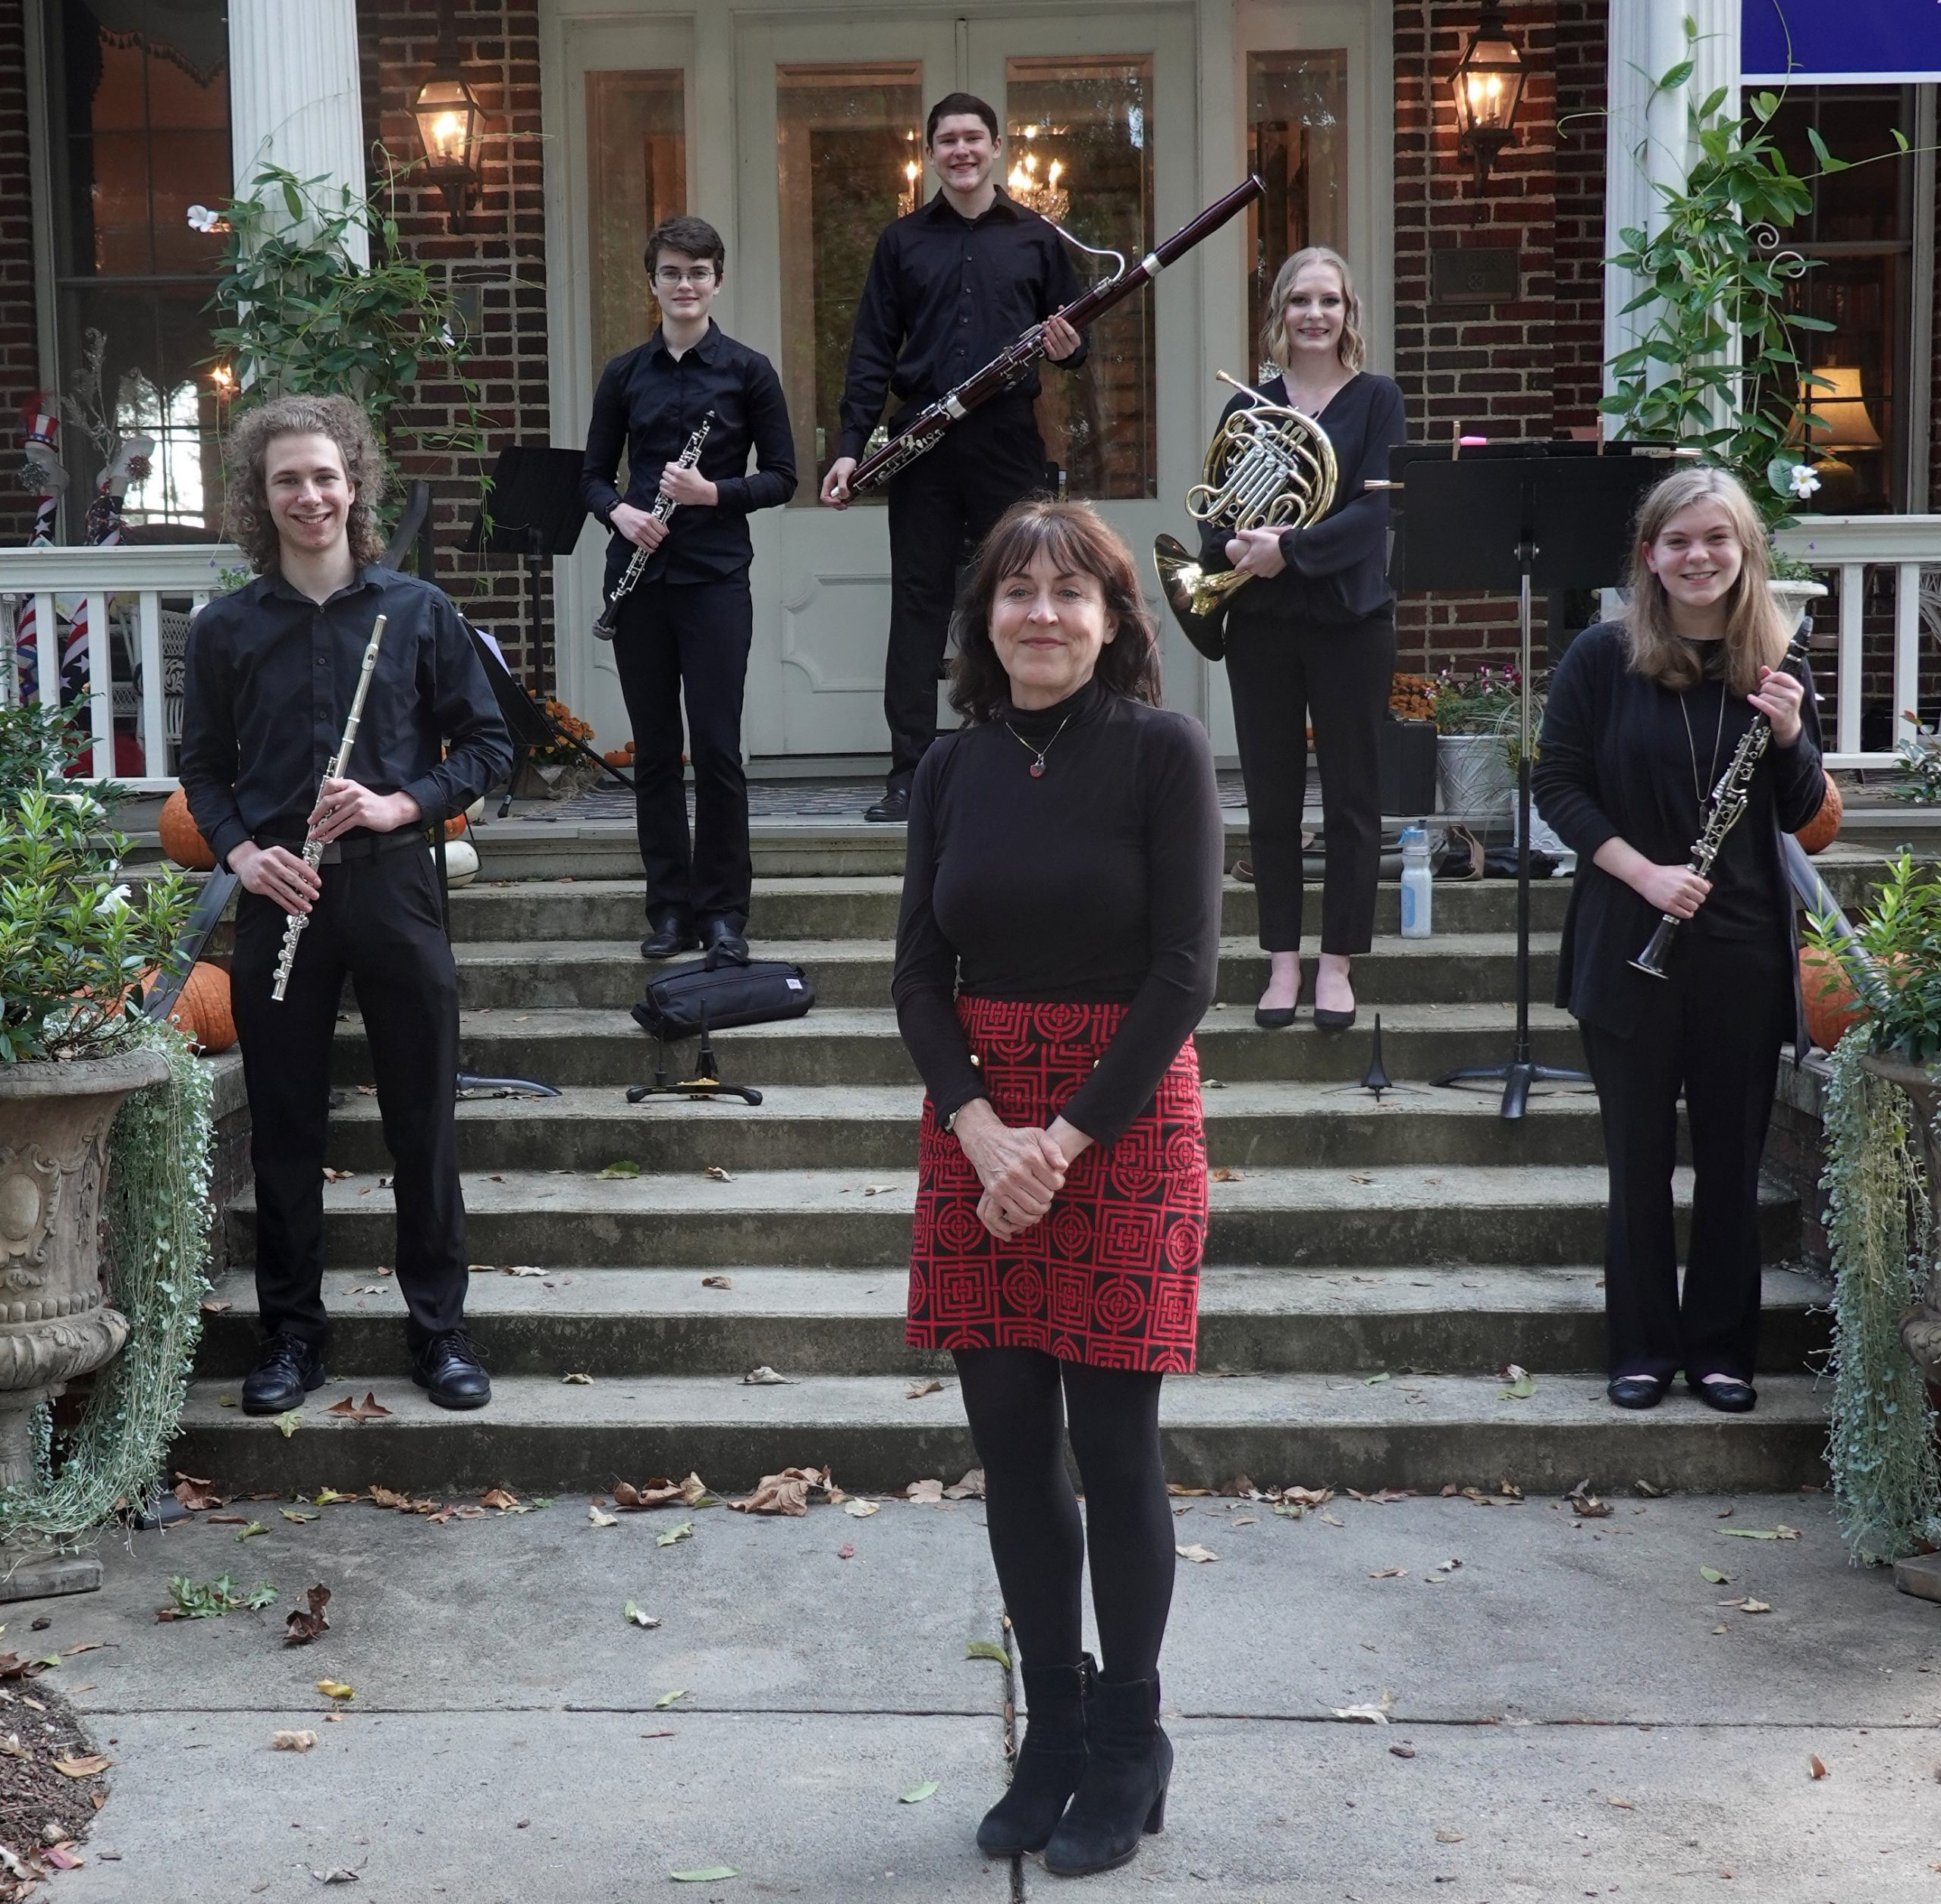 Image of TYP Wind Quintet and coach Mary Boone standing on porch